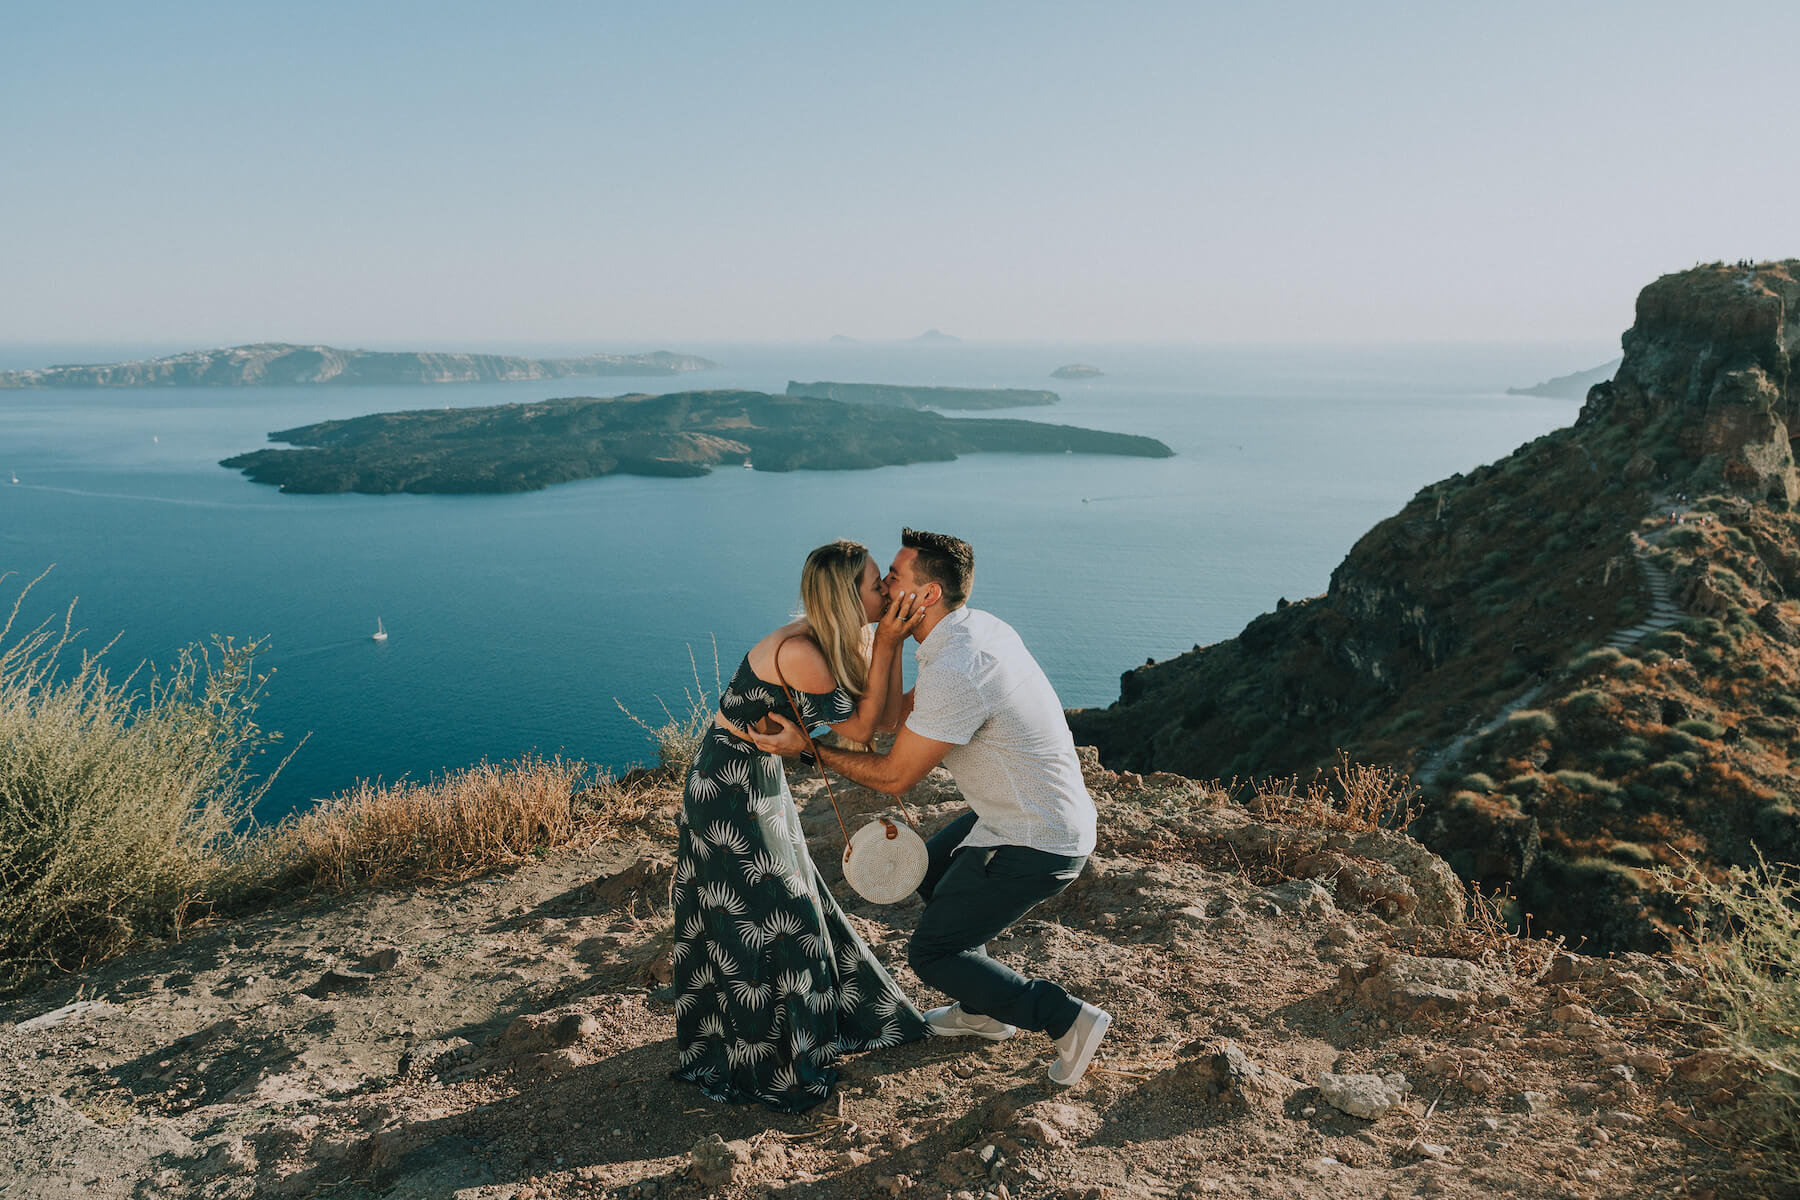 couple in Santorini, the man is proposing and the woman is surprised in Santorini, Greece